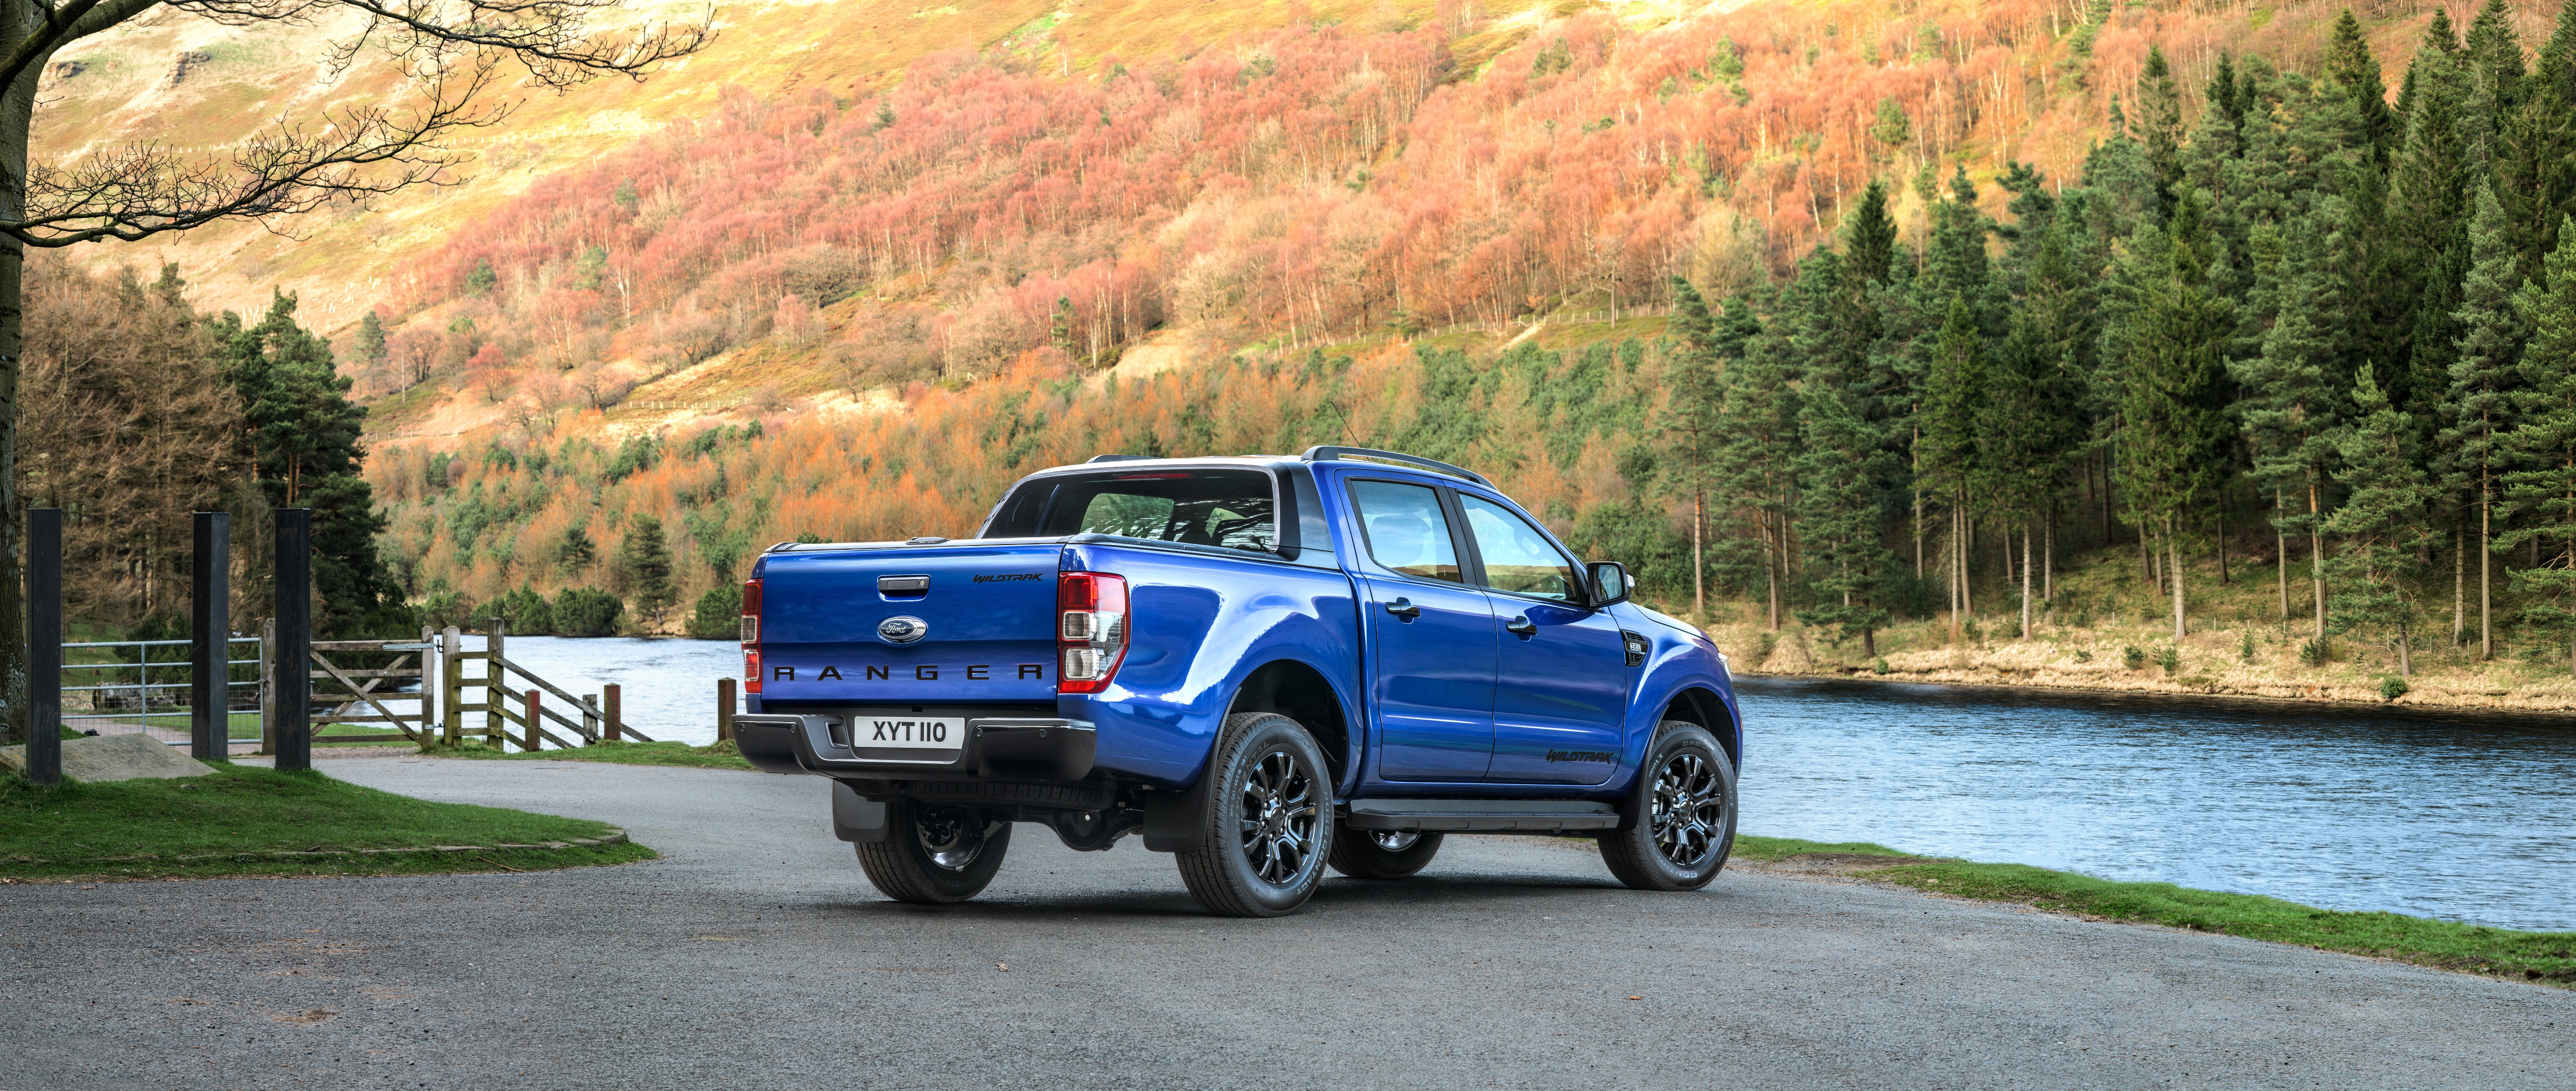 2018 Ford Ranger Wildtrak X Is Dressed To Impress Autoevolution